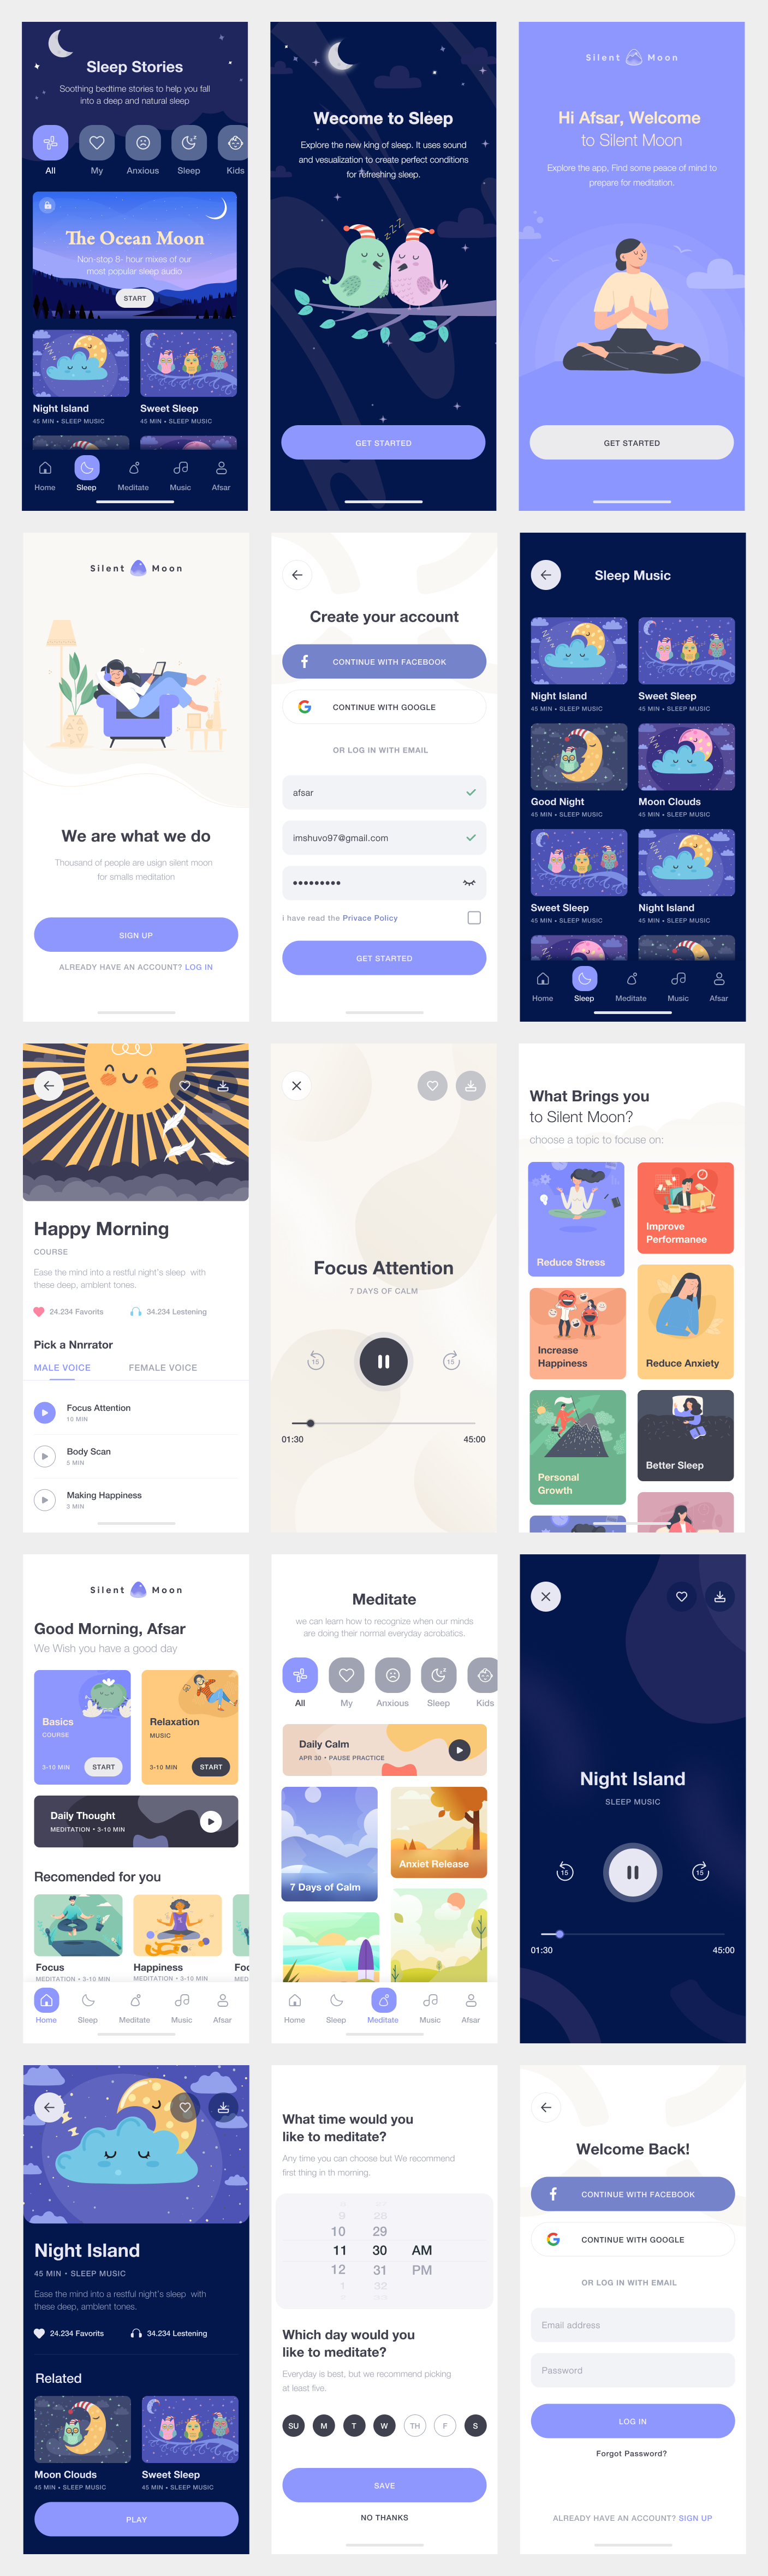 Meditation Free App UI Kit - Meditation helps you to recover your original, true mind. This grows the inner power. There are thousands of benefits from making your mind healthy. We are working on a great meditation app where you can meditate properly in a very comfortable way. Minimal and clean app design, 15+ screens for you to get started.